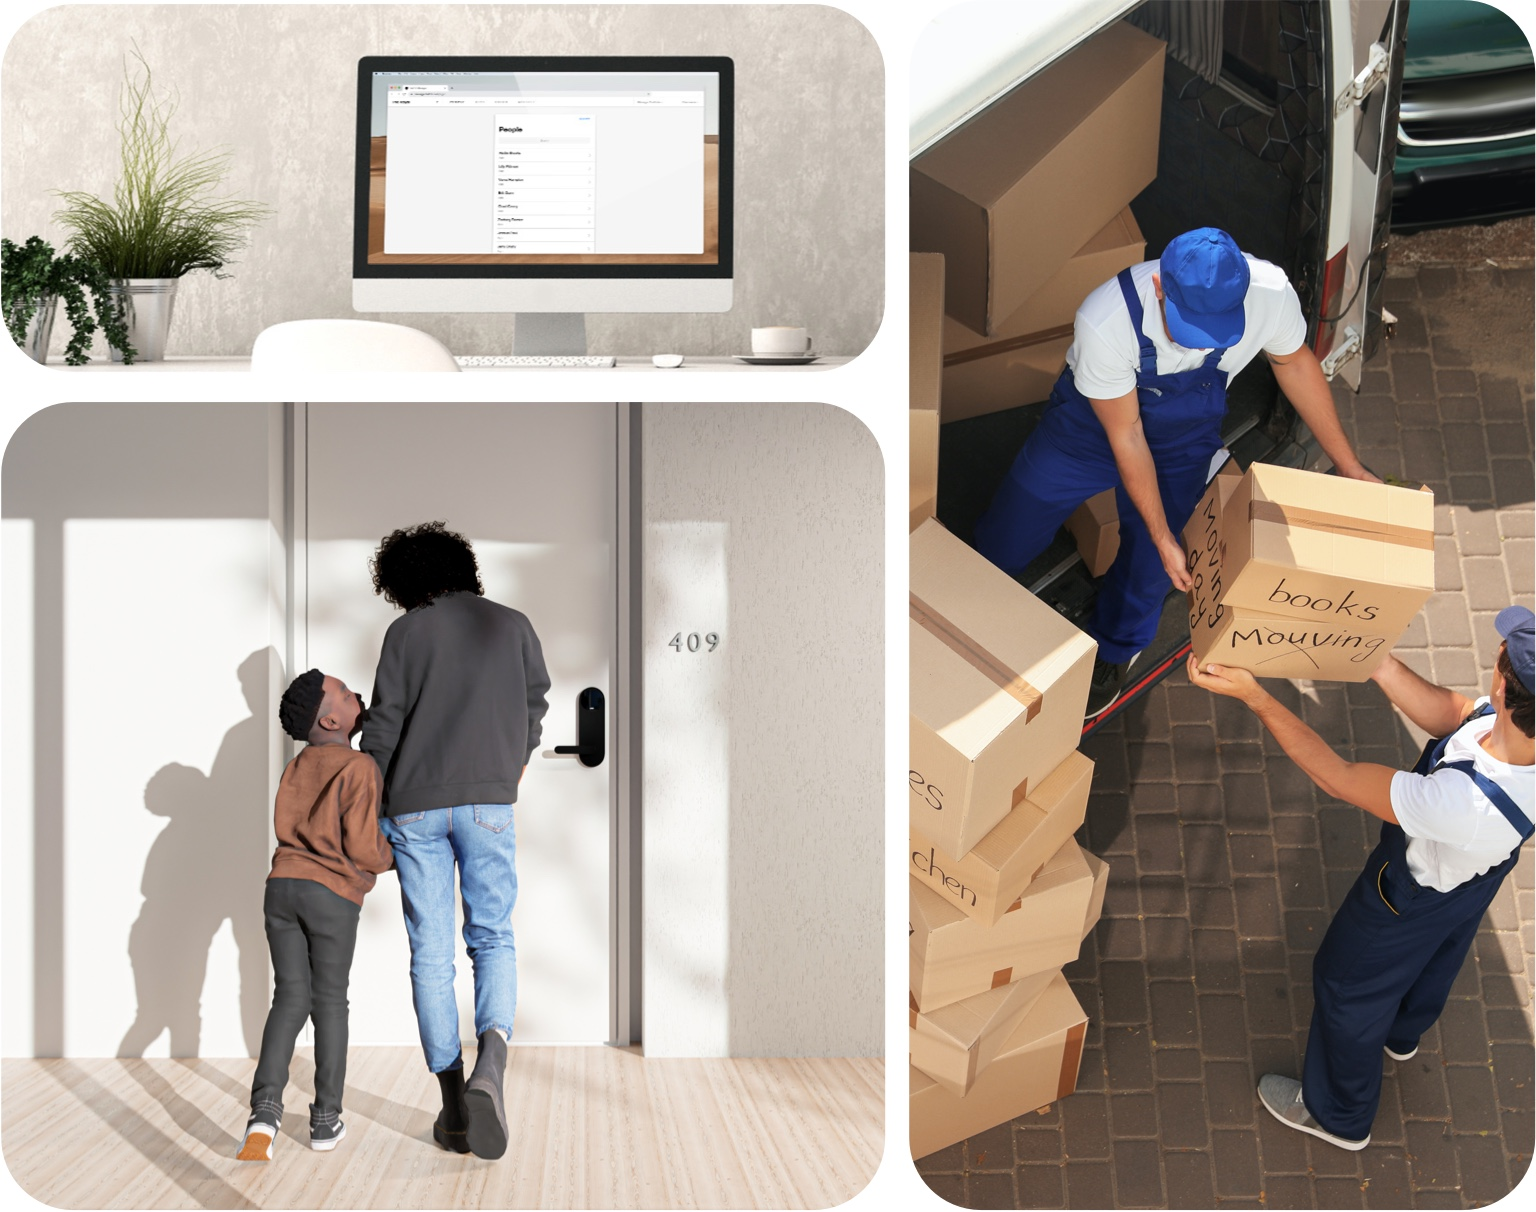 Collage showing Latch Manager page on computer, deliver people moving boxes, and a mother and son standing in front of their apartment door.